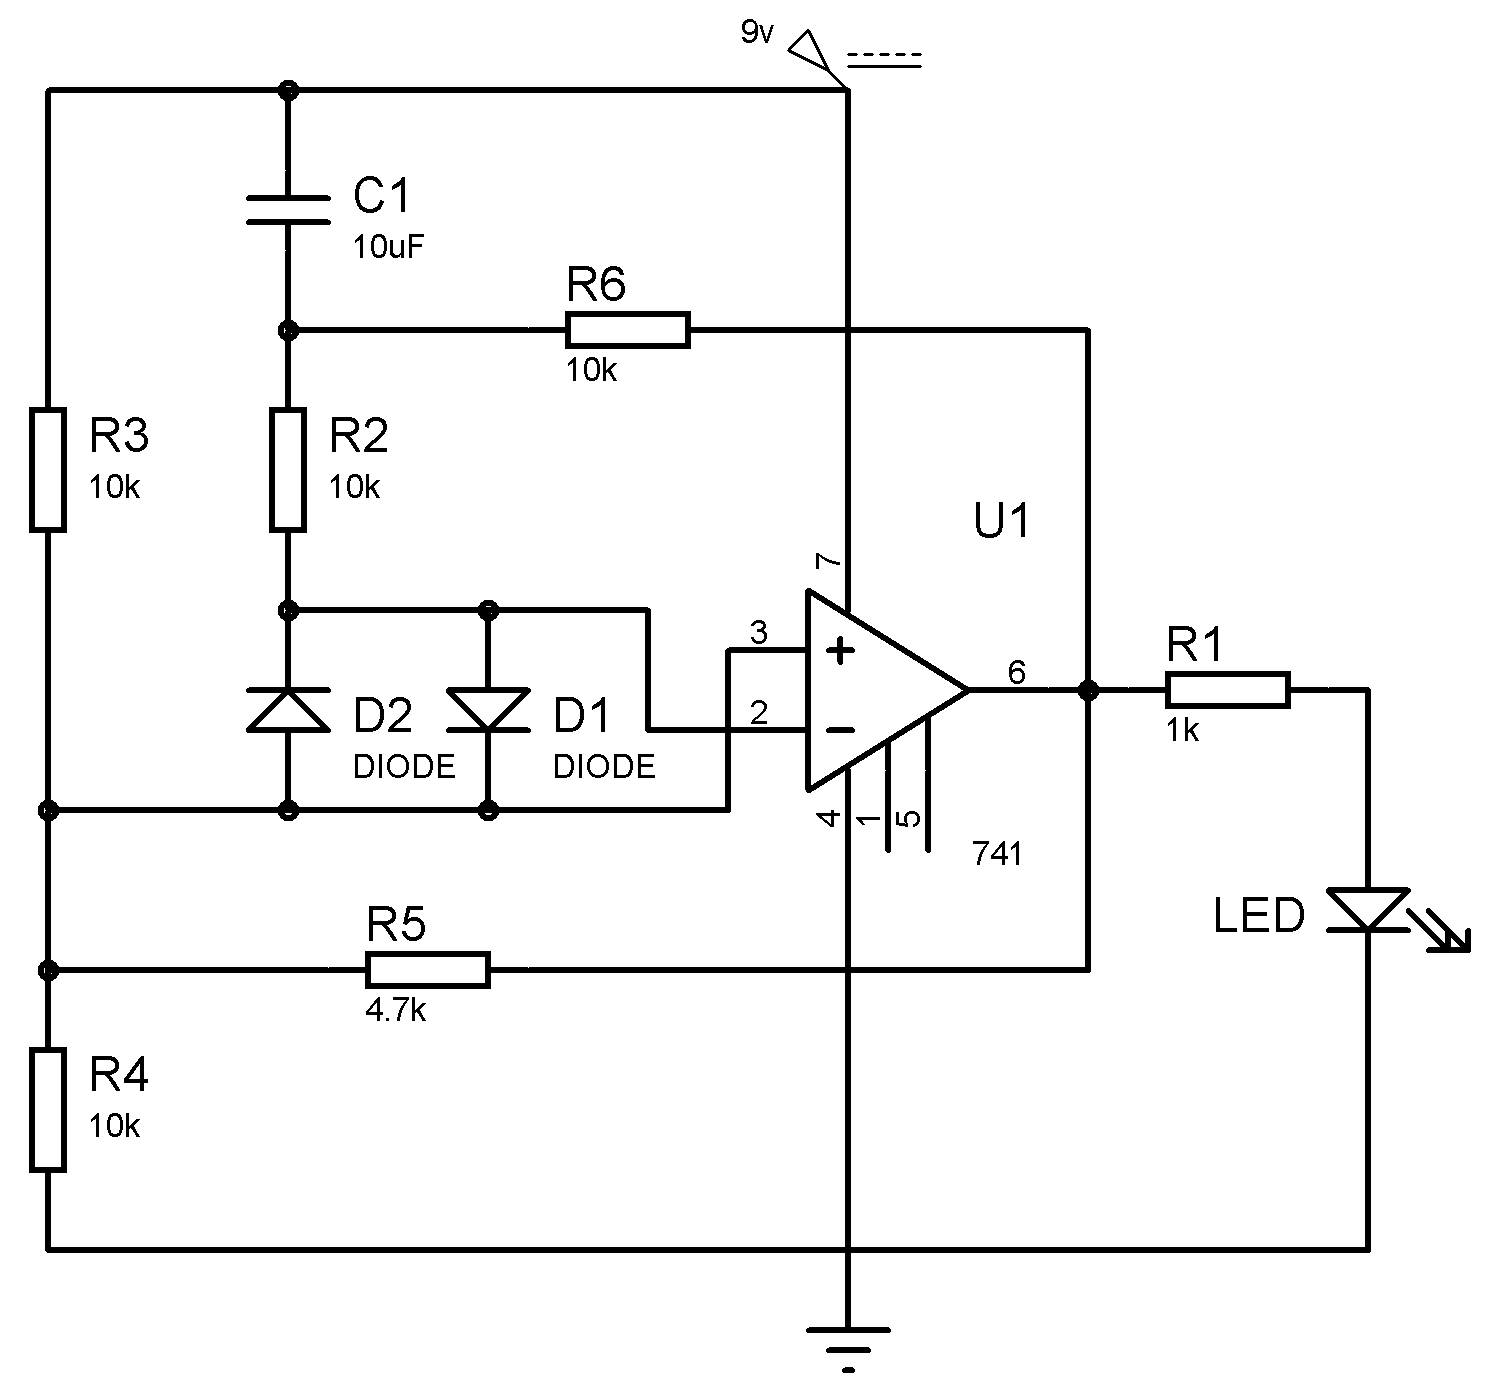 Op-amp IC LM741 Tester Circuit Diagram